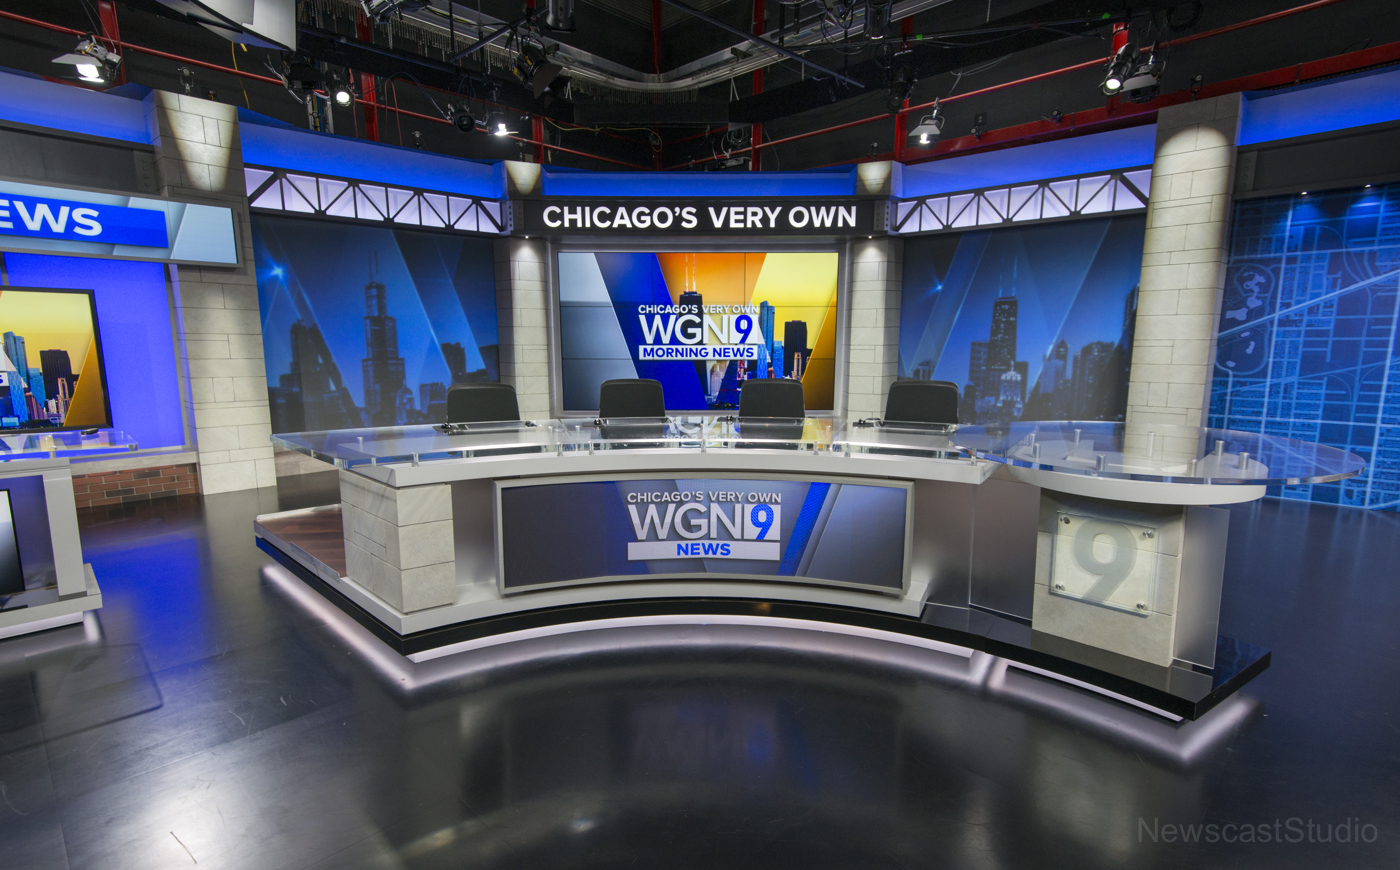 Wgn Broadcast Set Design Gallery